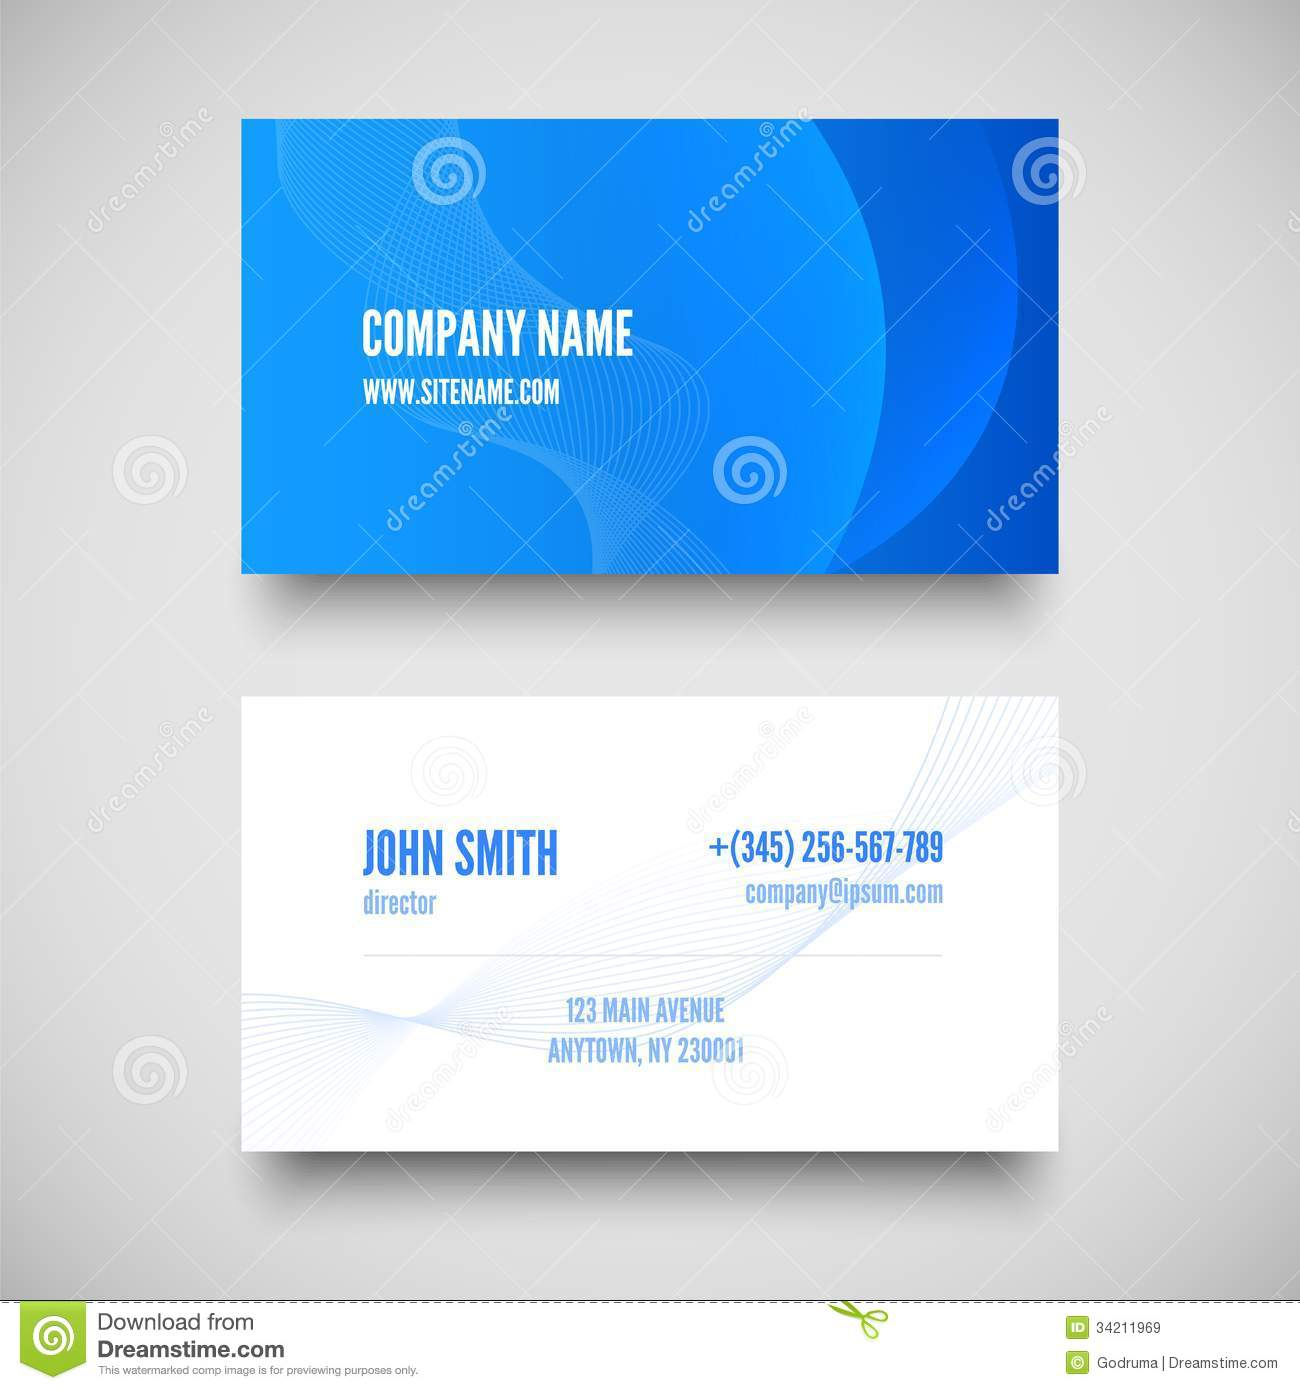 Free Vector Business Cards Backgrounds Gallery - Card Design And ...